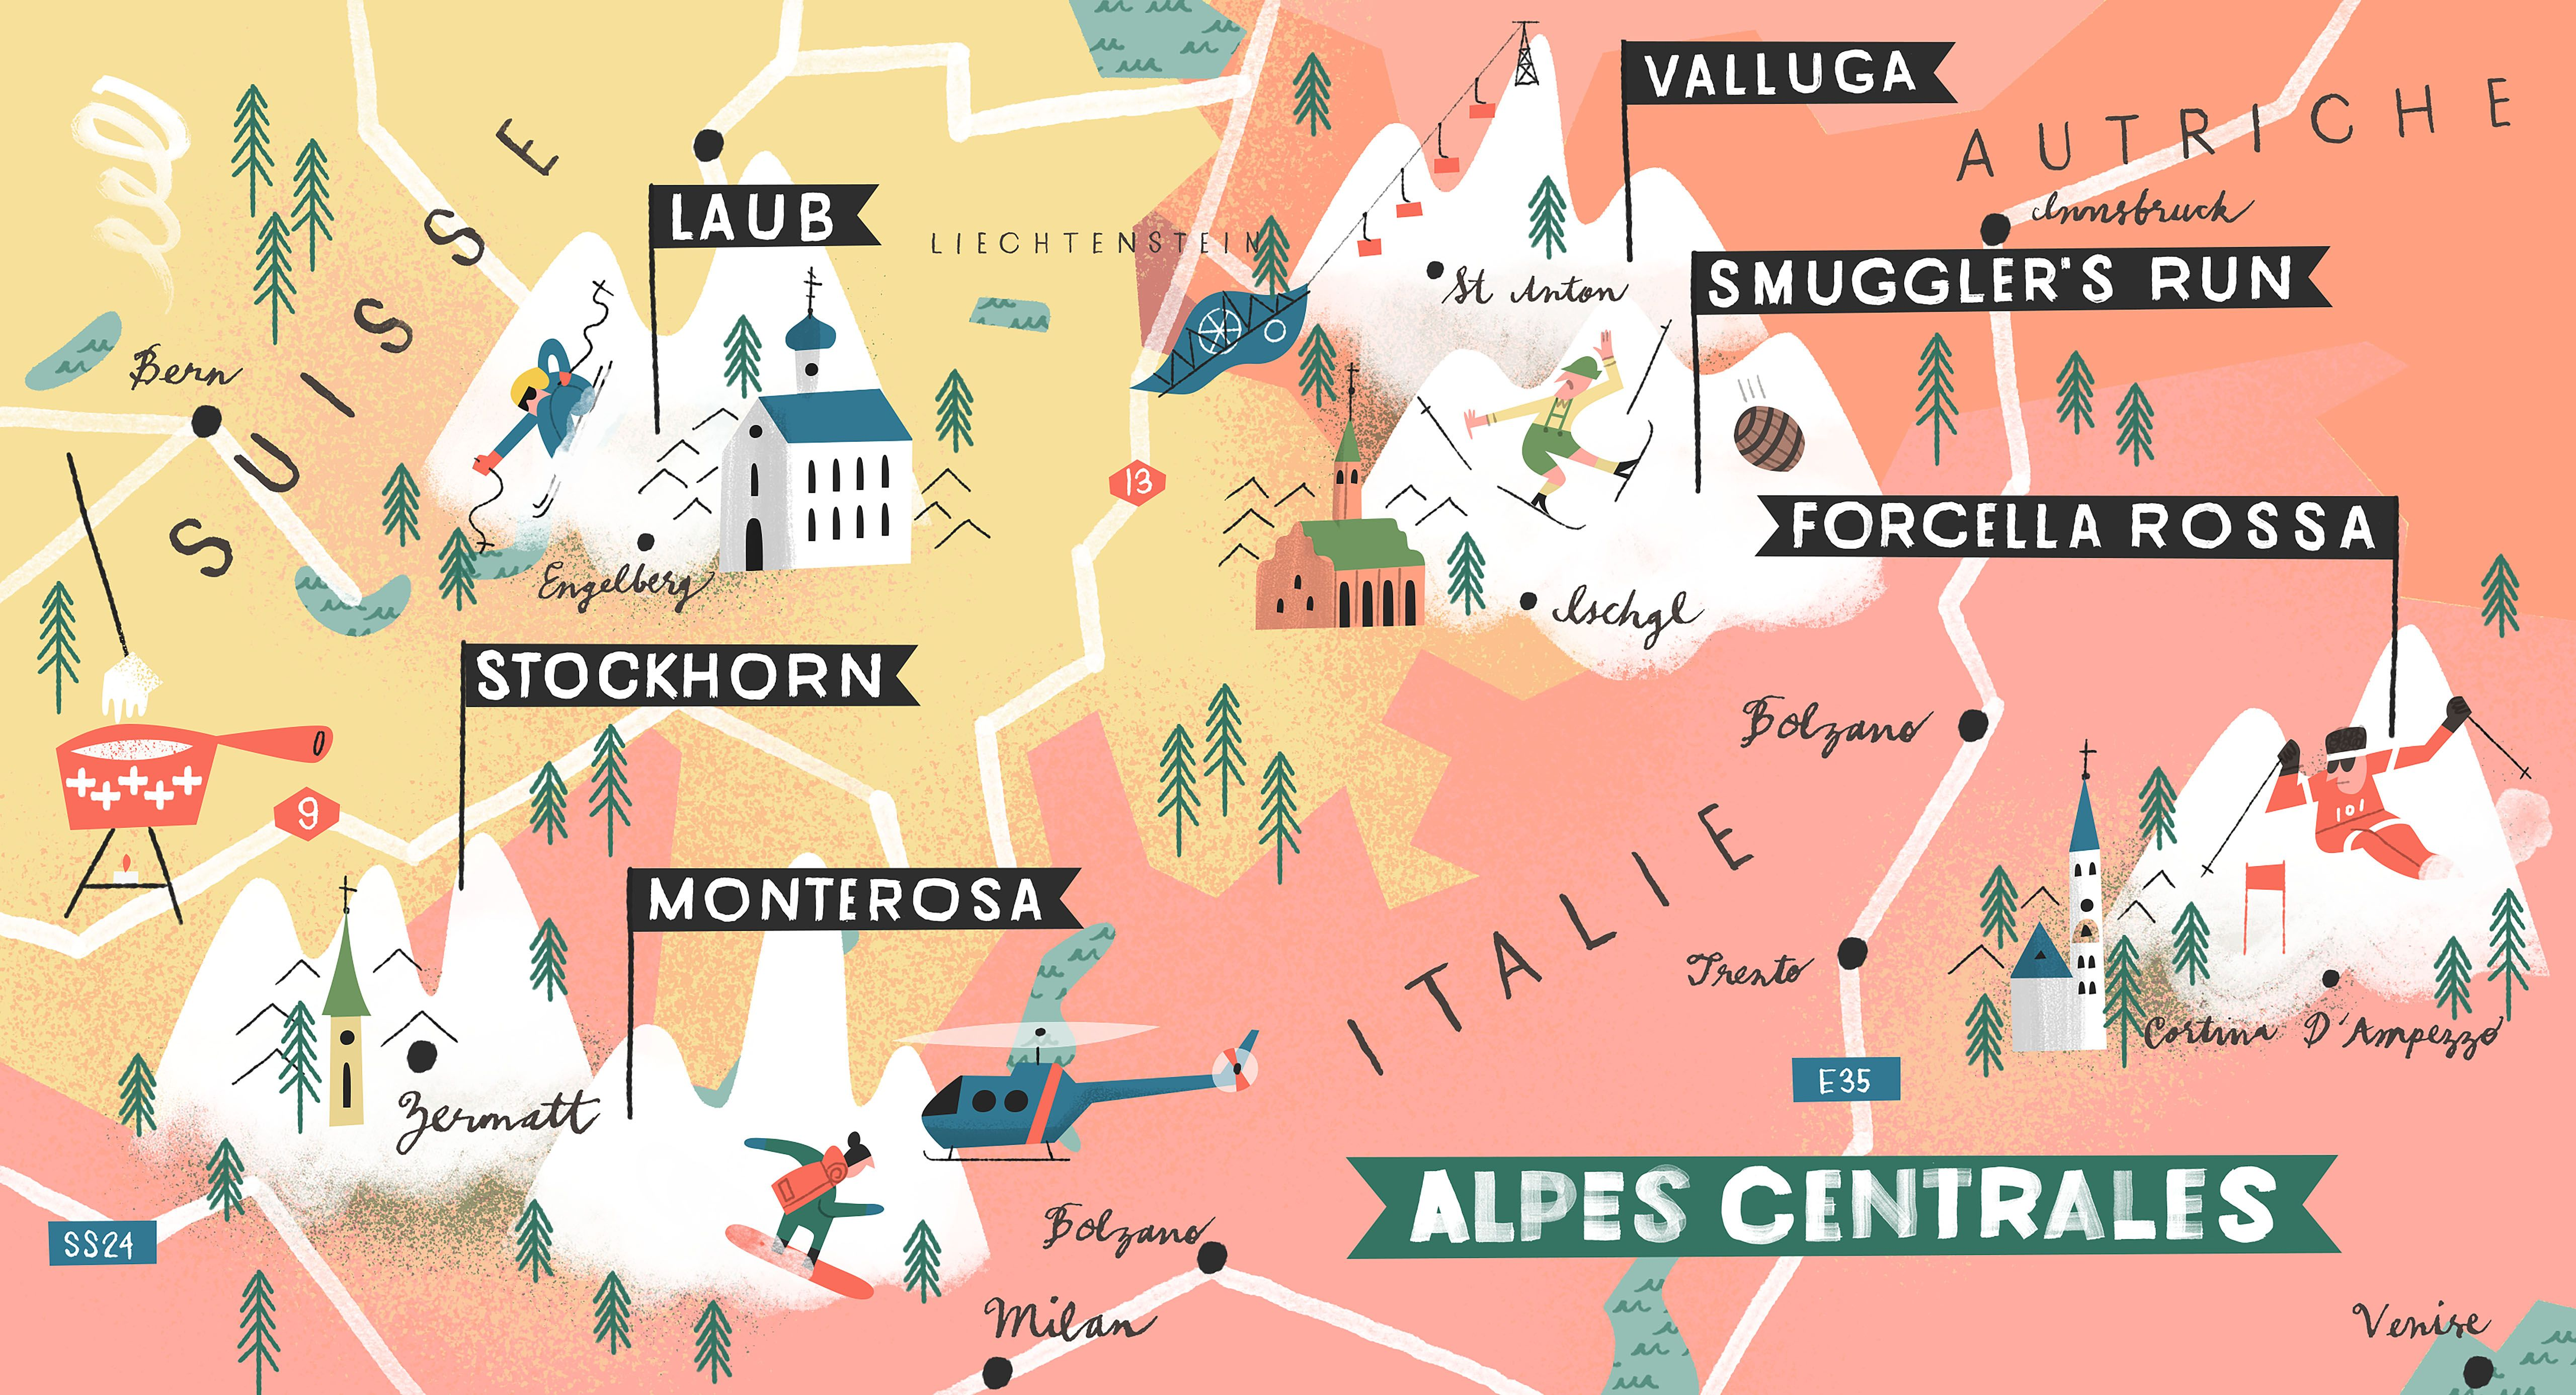 Best places to Ski in the Central Alps. Illustrated map for ... on map of detroit freeways, international airport, map of detroit suburbs, map of atlanta neighborhoods, map of detroit casinos, map of belle isle detroit, map of detroit attractions, map of baton rouge streets, map of terminals at dtw, map of detroit civic center, map of atlanta zip codes, map of detroit michigan, map of detroit highways, map of detroit chicago, map of downtown detroit, map of detroit area, map of detroit expressways, map of detroit people mover, map of hotels in chattanooga, map of detroit streets,